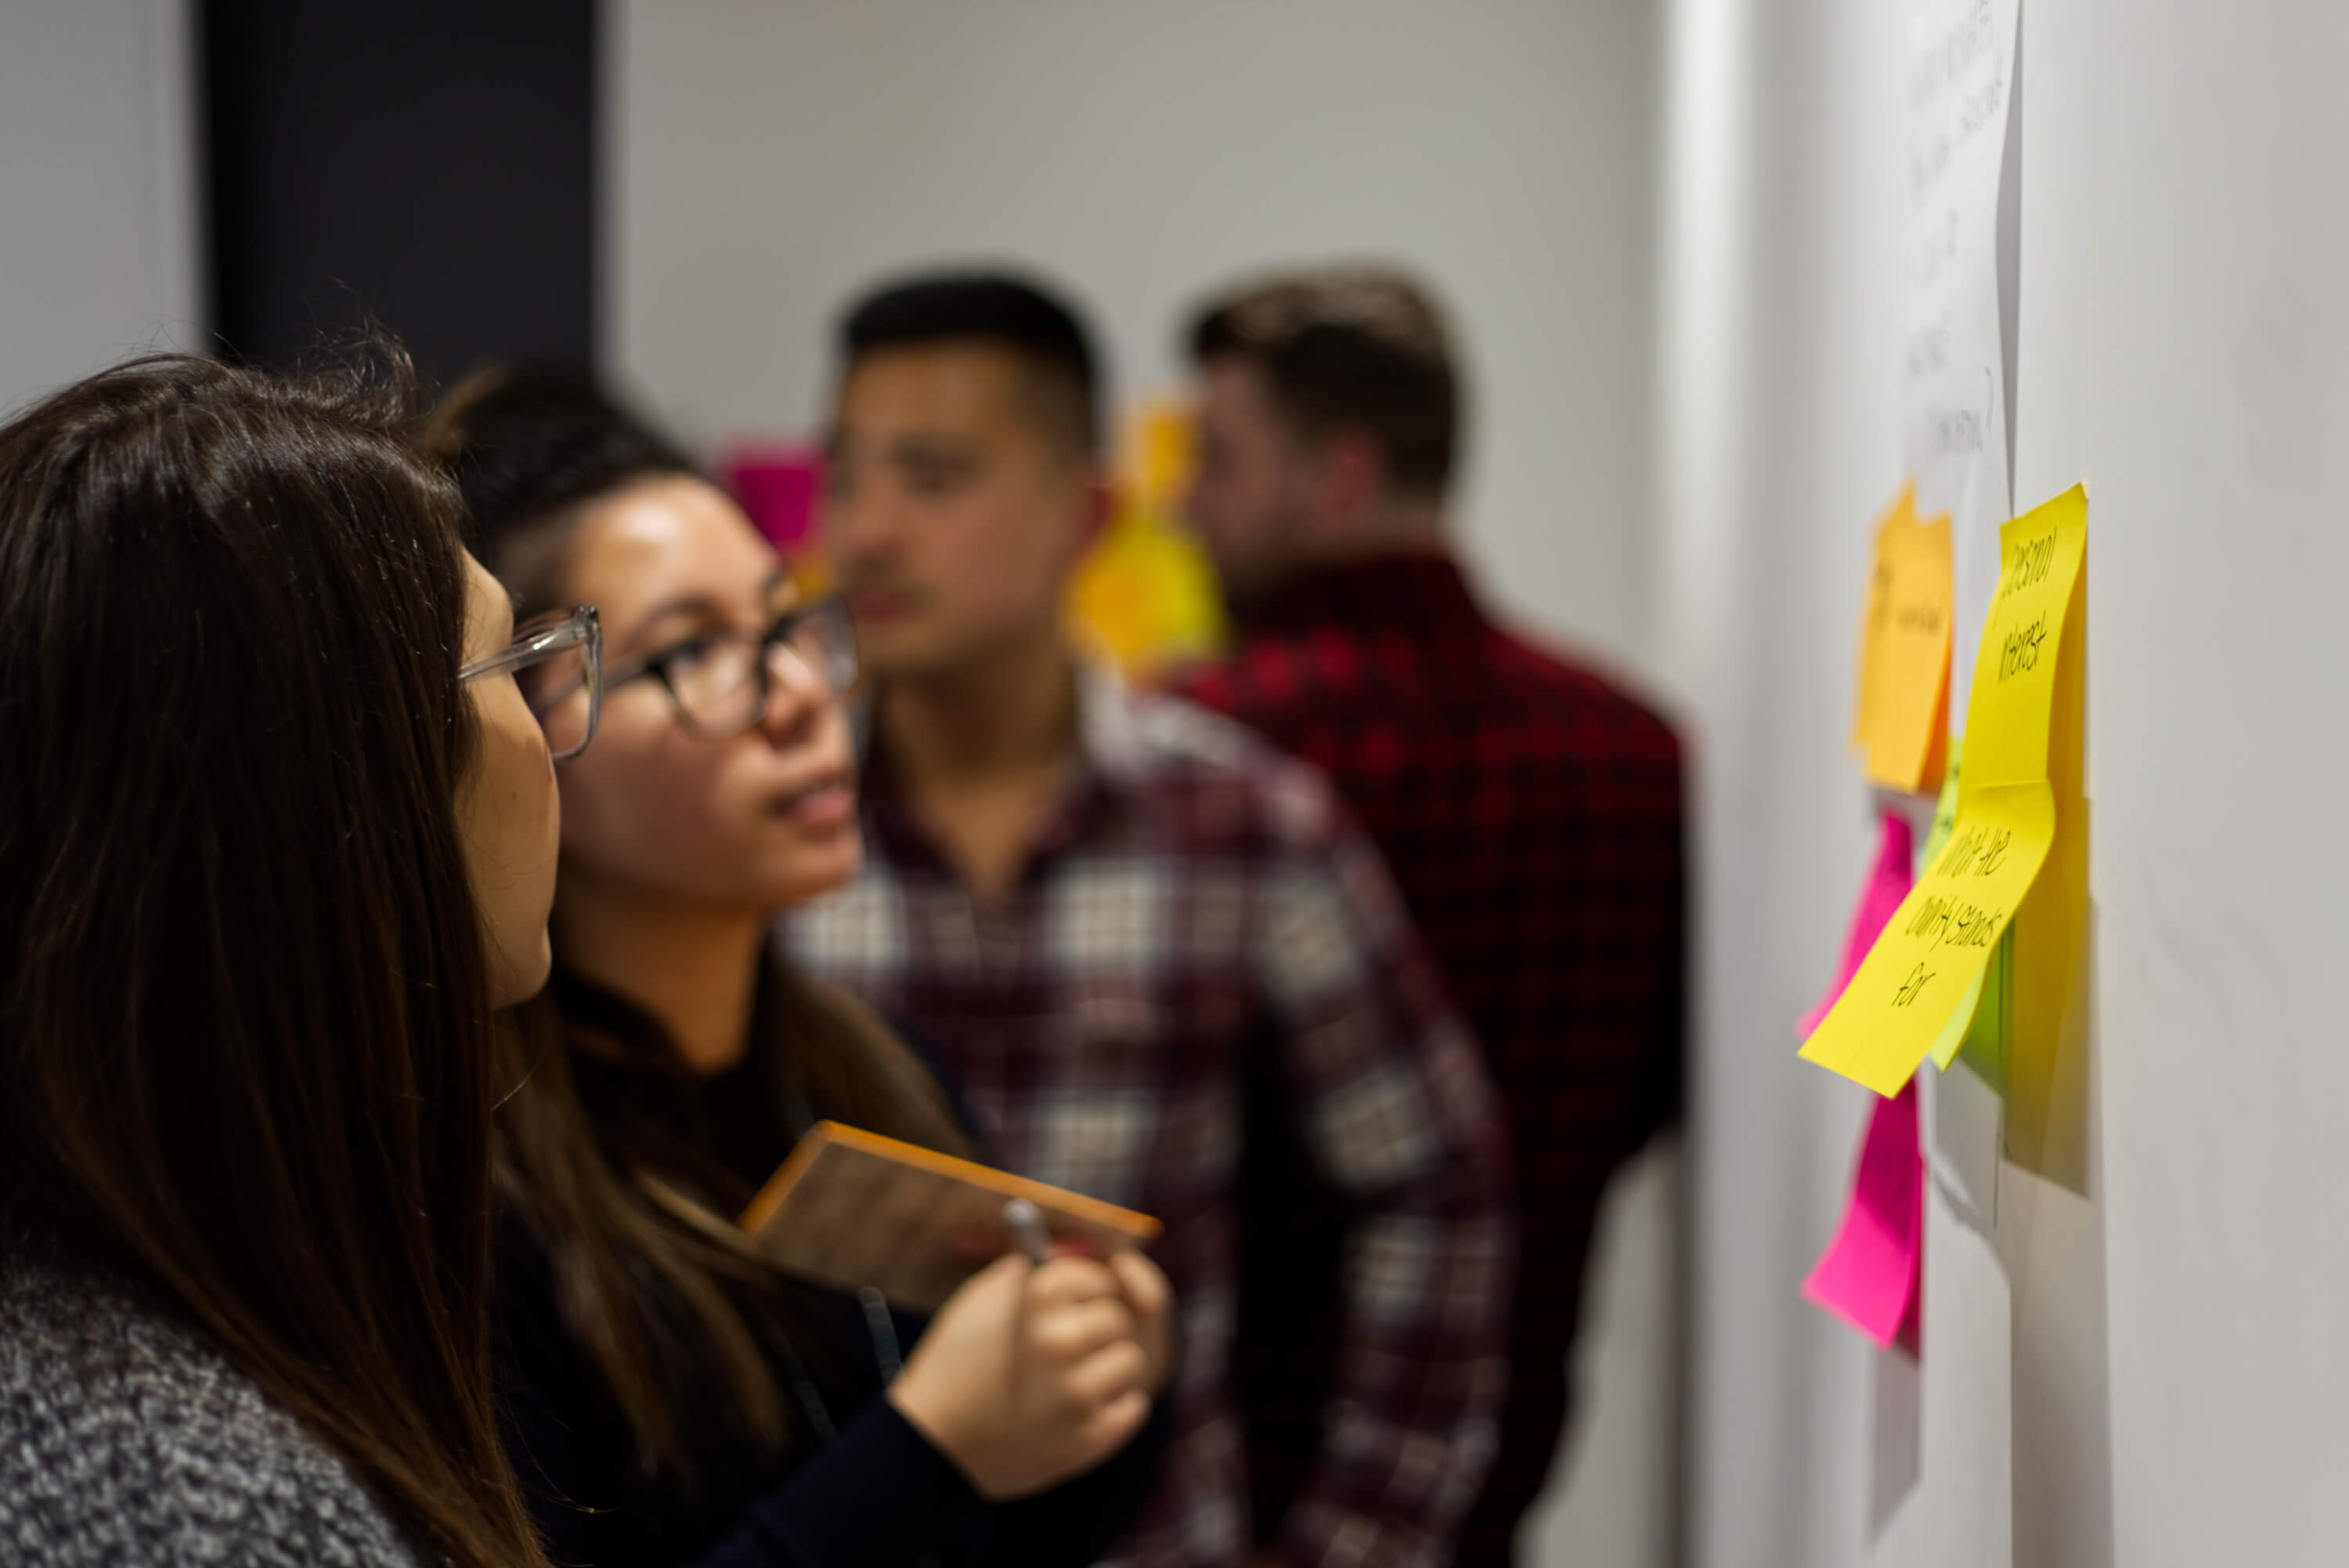 Two women with post it notes, discussing a problem near a whiteboard